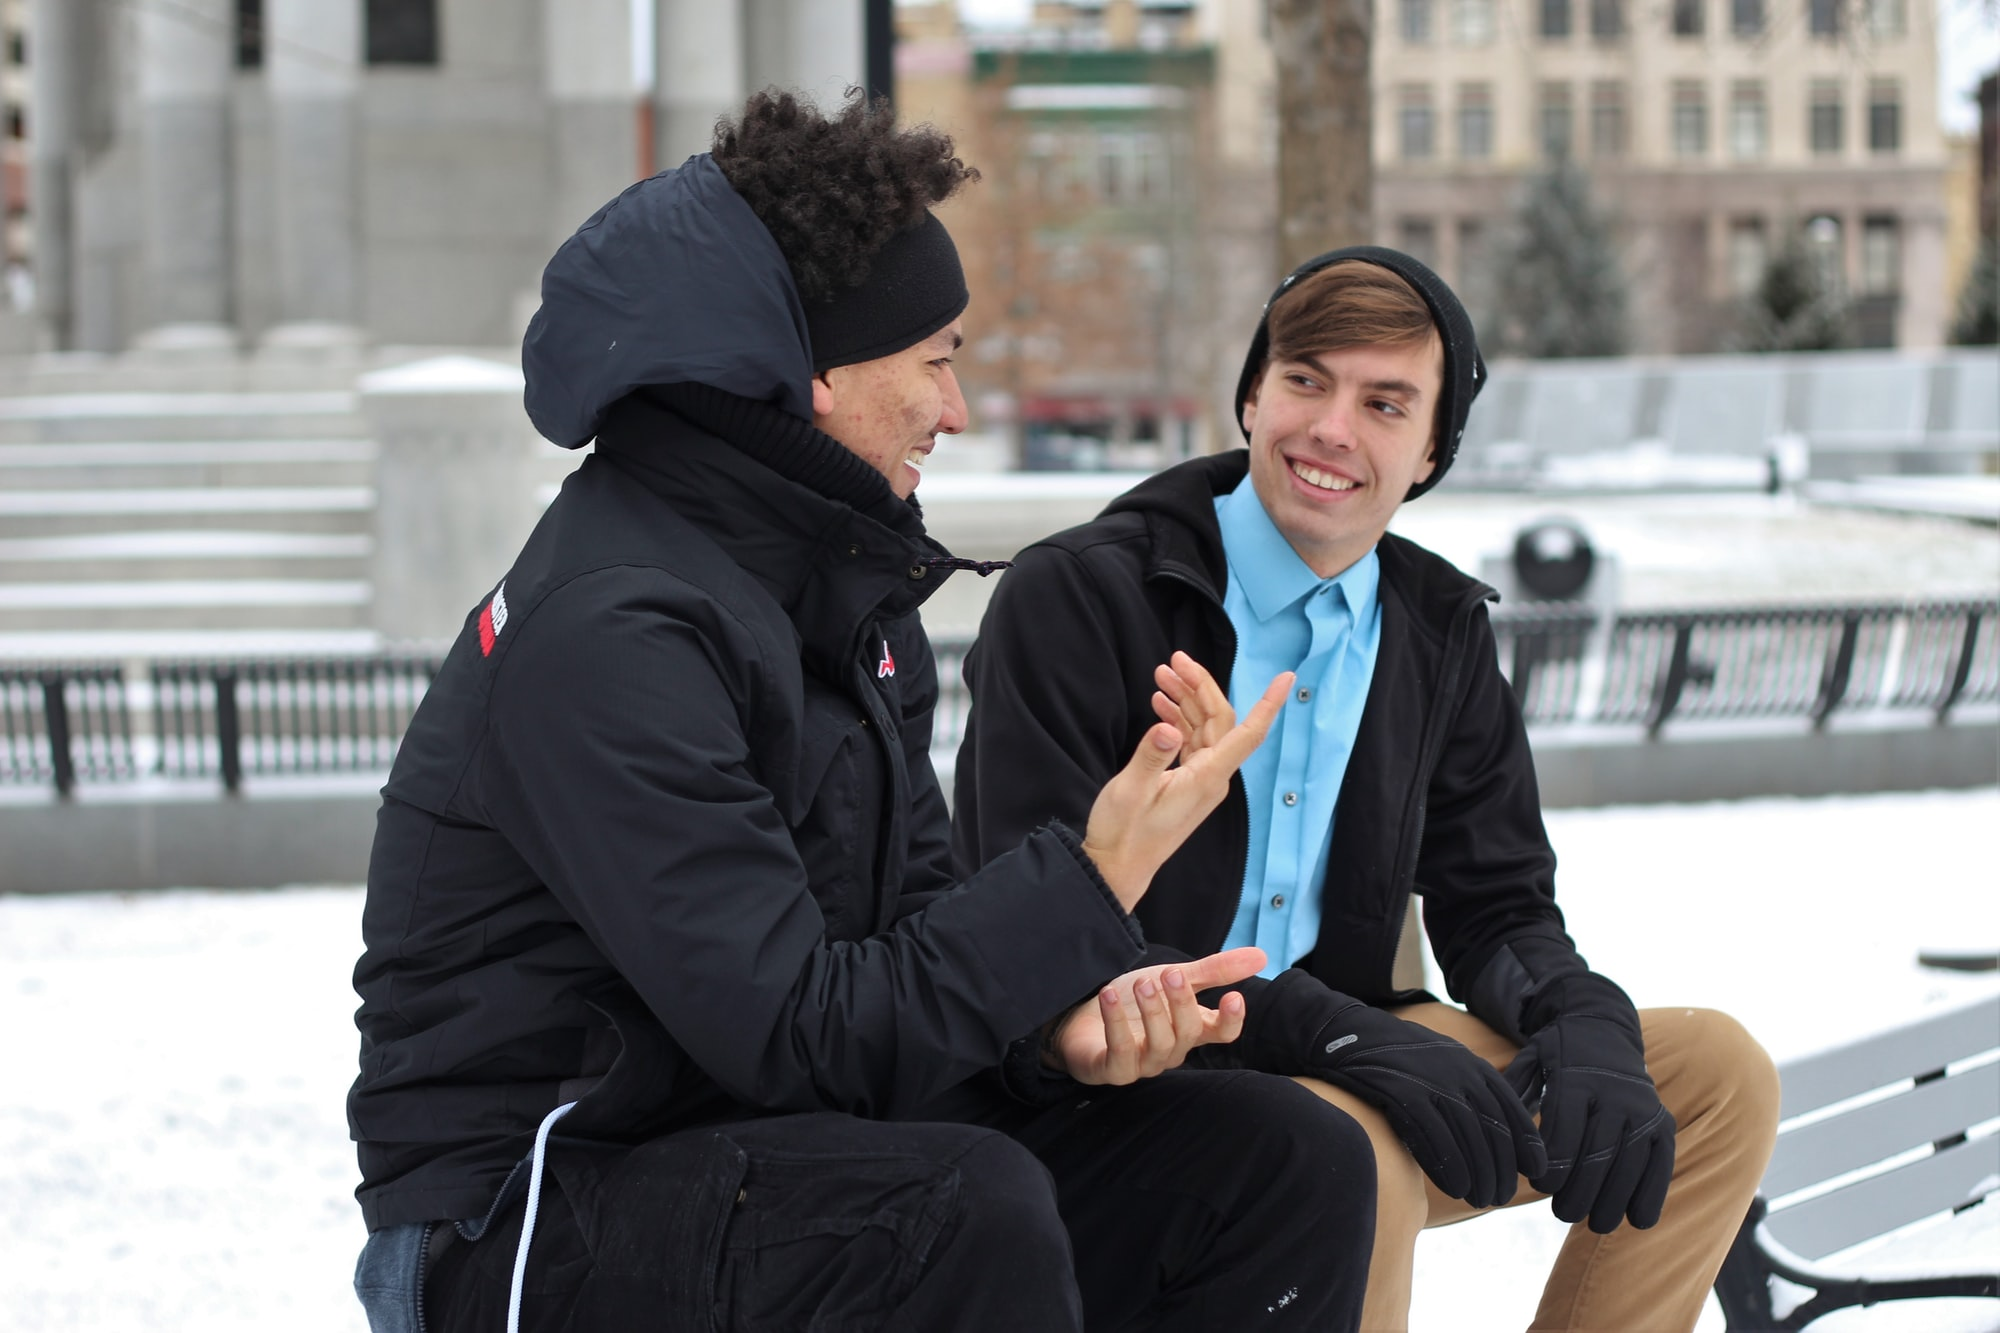 Men talking in the cold